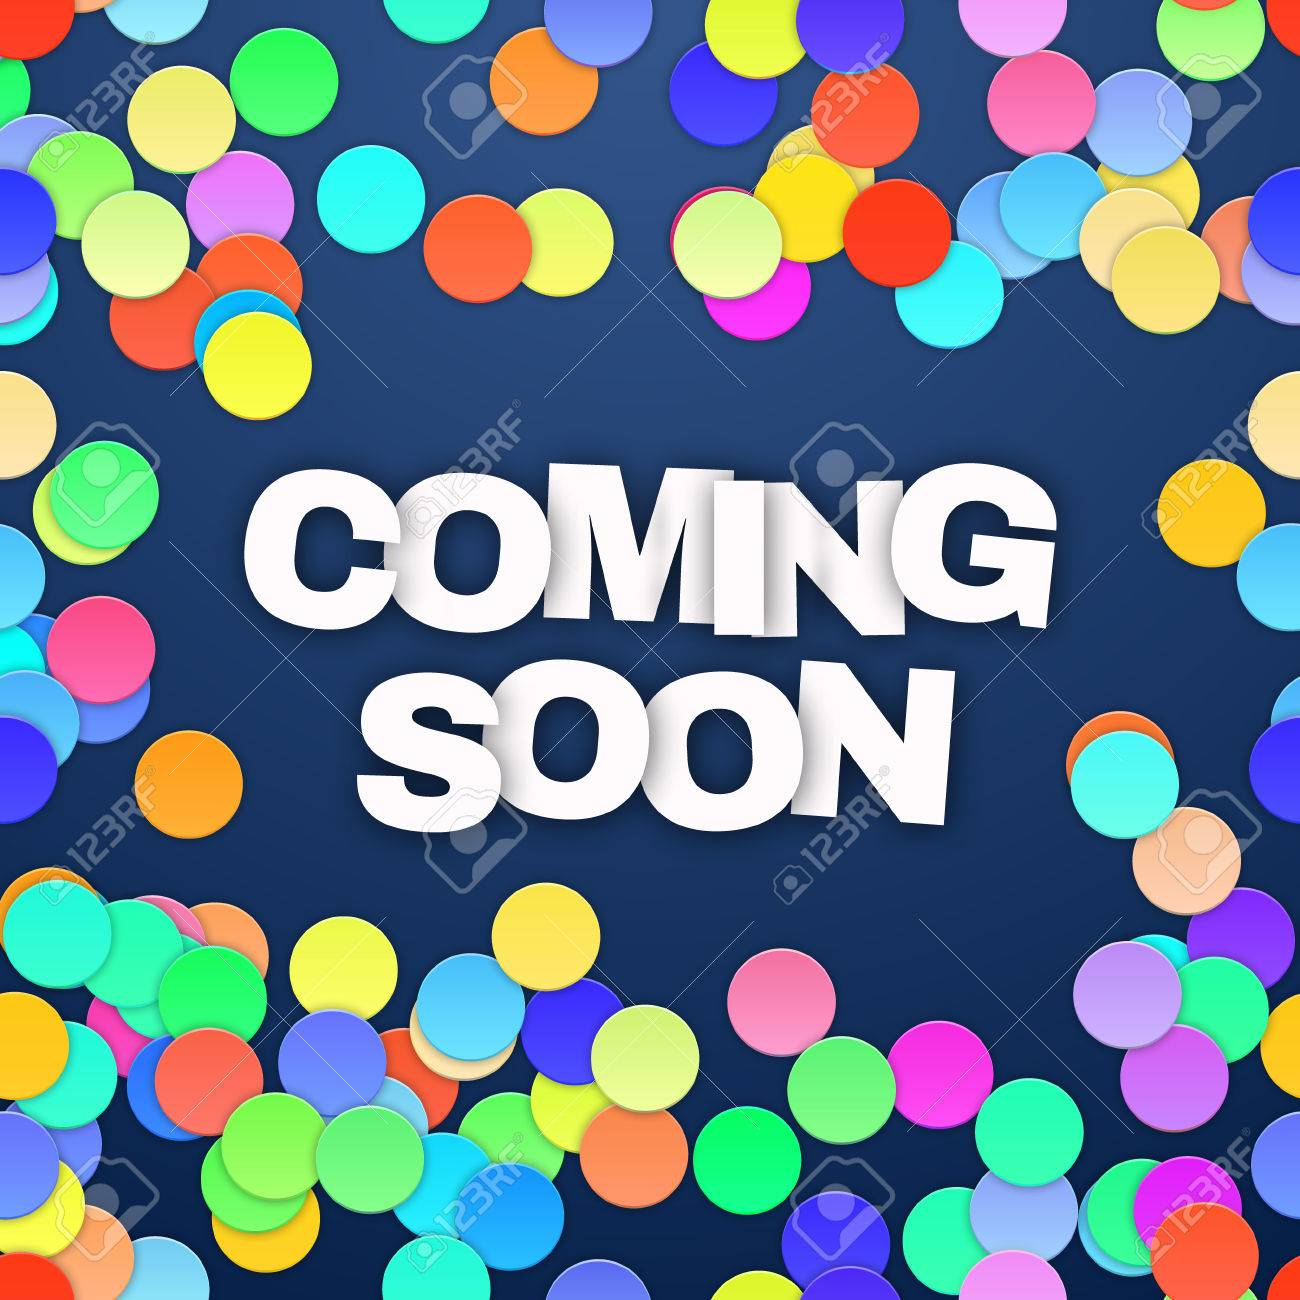 Coming Soon on blue background. Vector illustration - 40762303